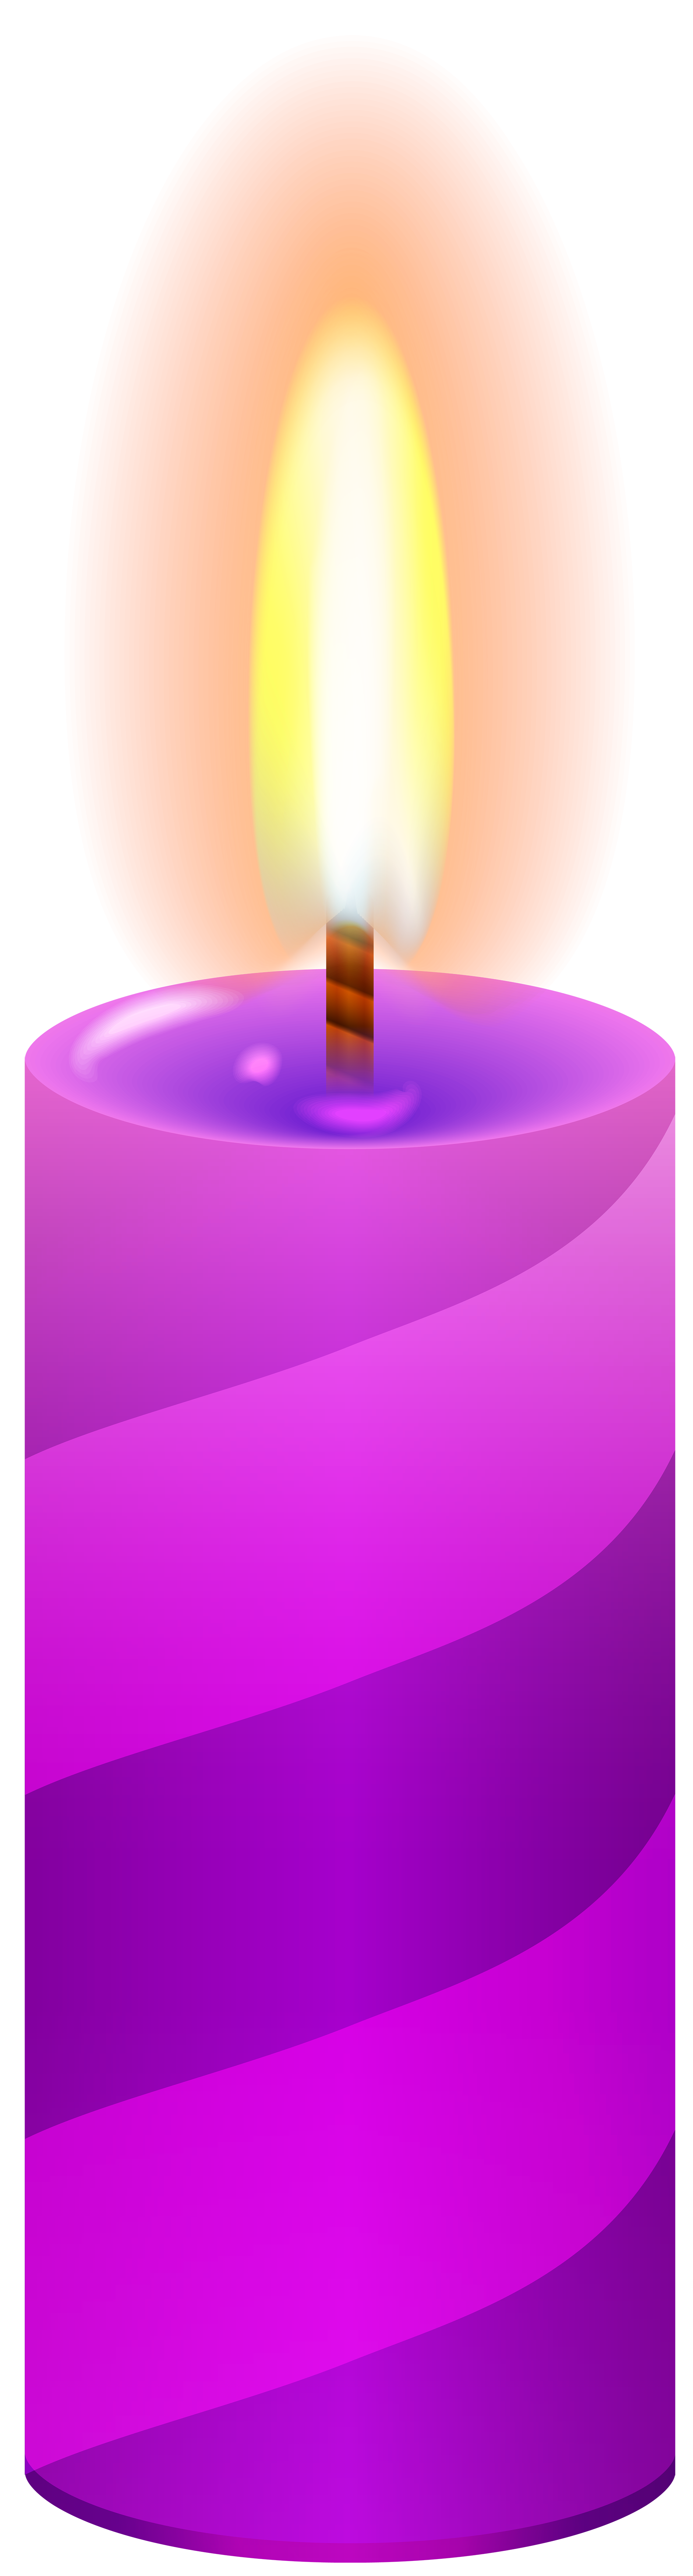 Purple png clip art. Clipart candle pink candle